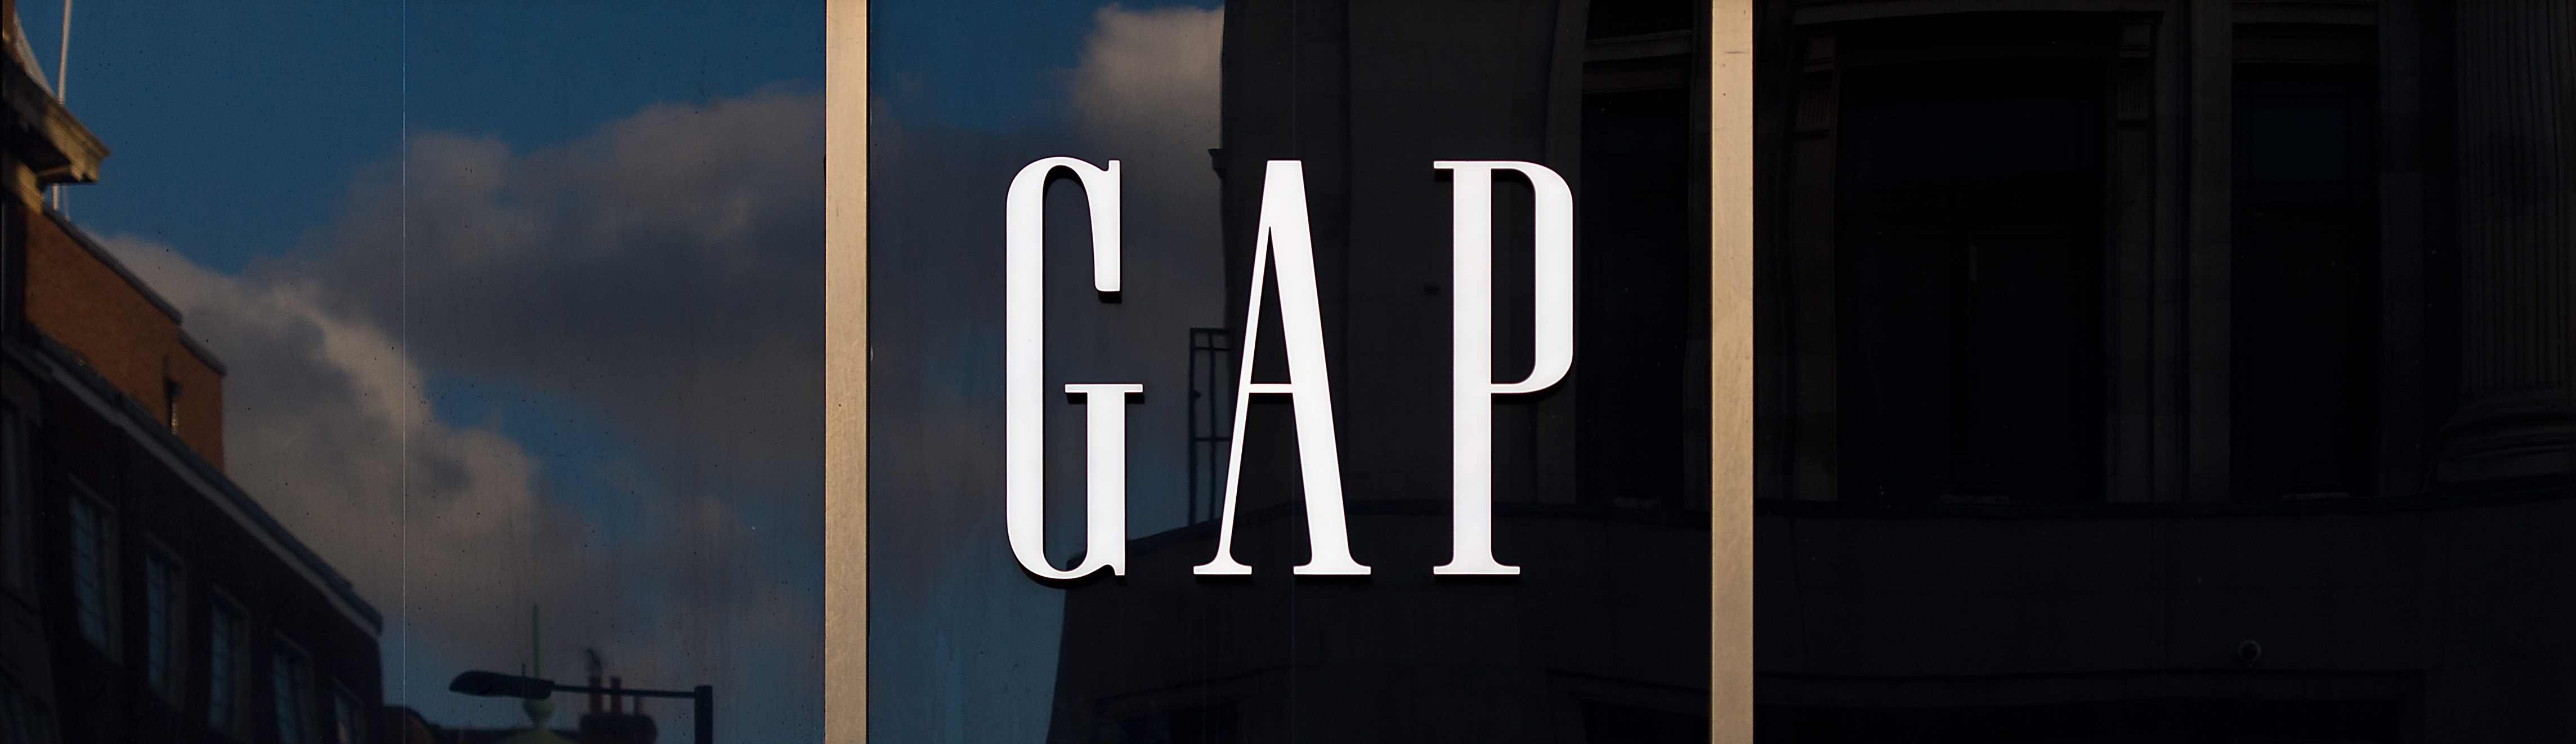 Signage on the exterior of fashion retailer Gap's Oxford Street store in London on Feb. 11, 2016.